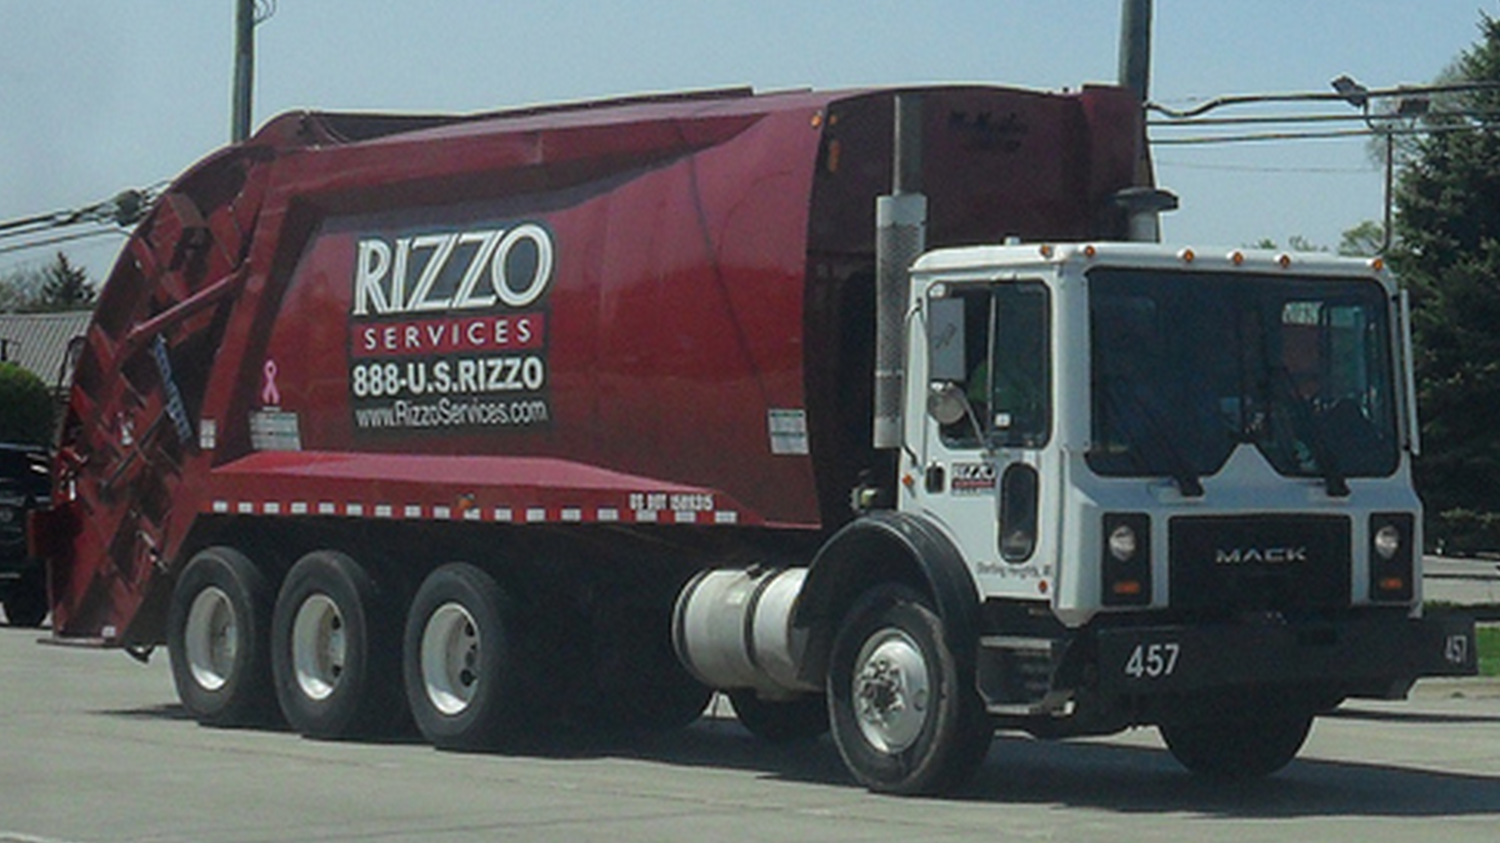 Kinderhook Acquires Rizzo Environmental Services